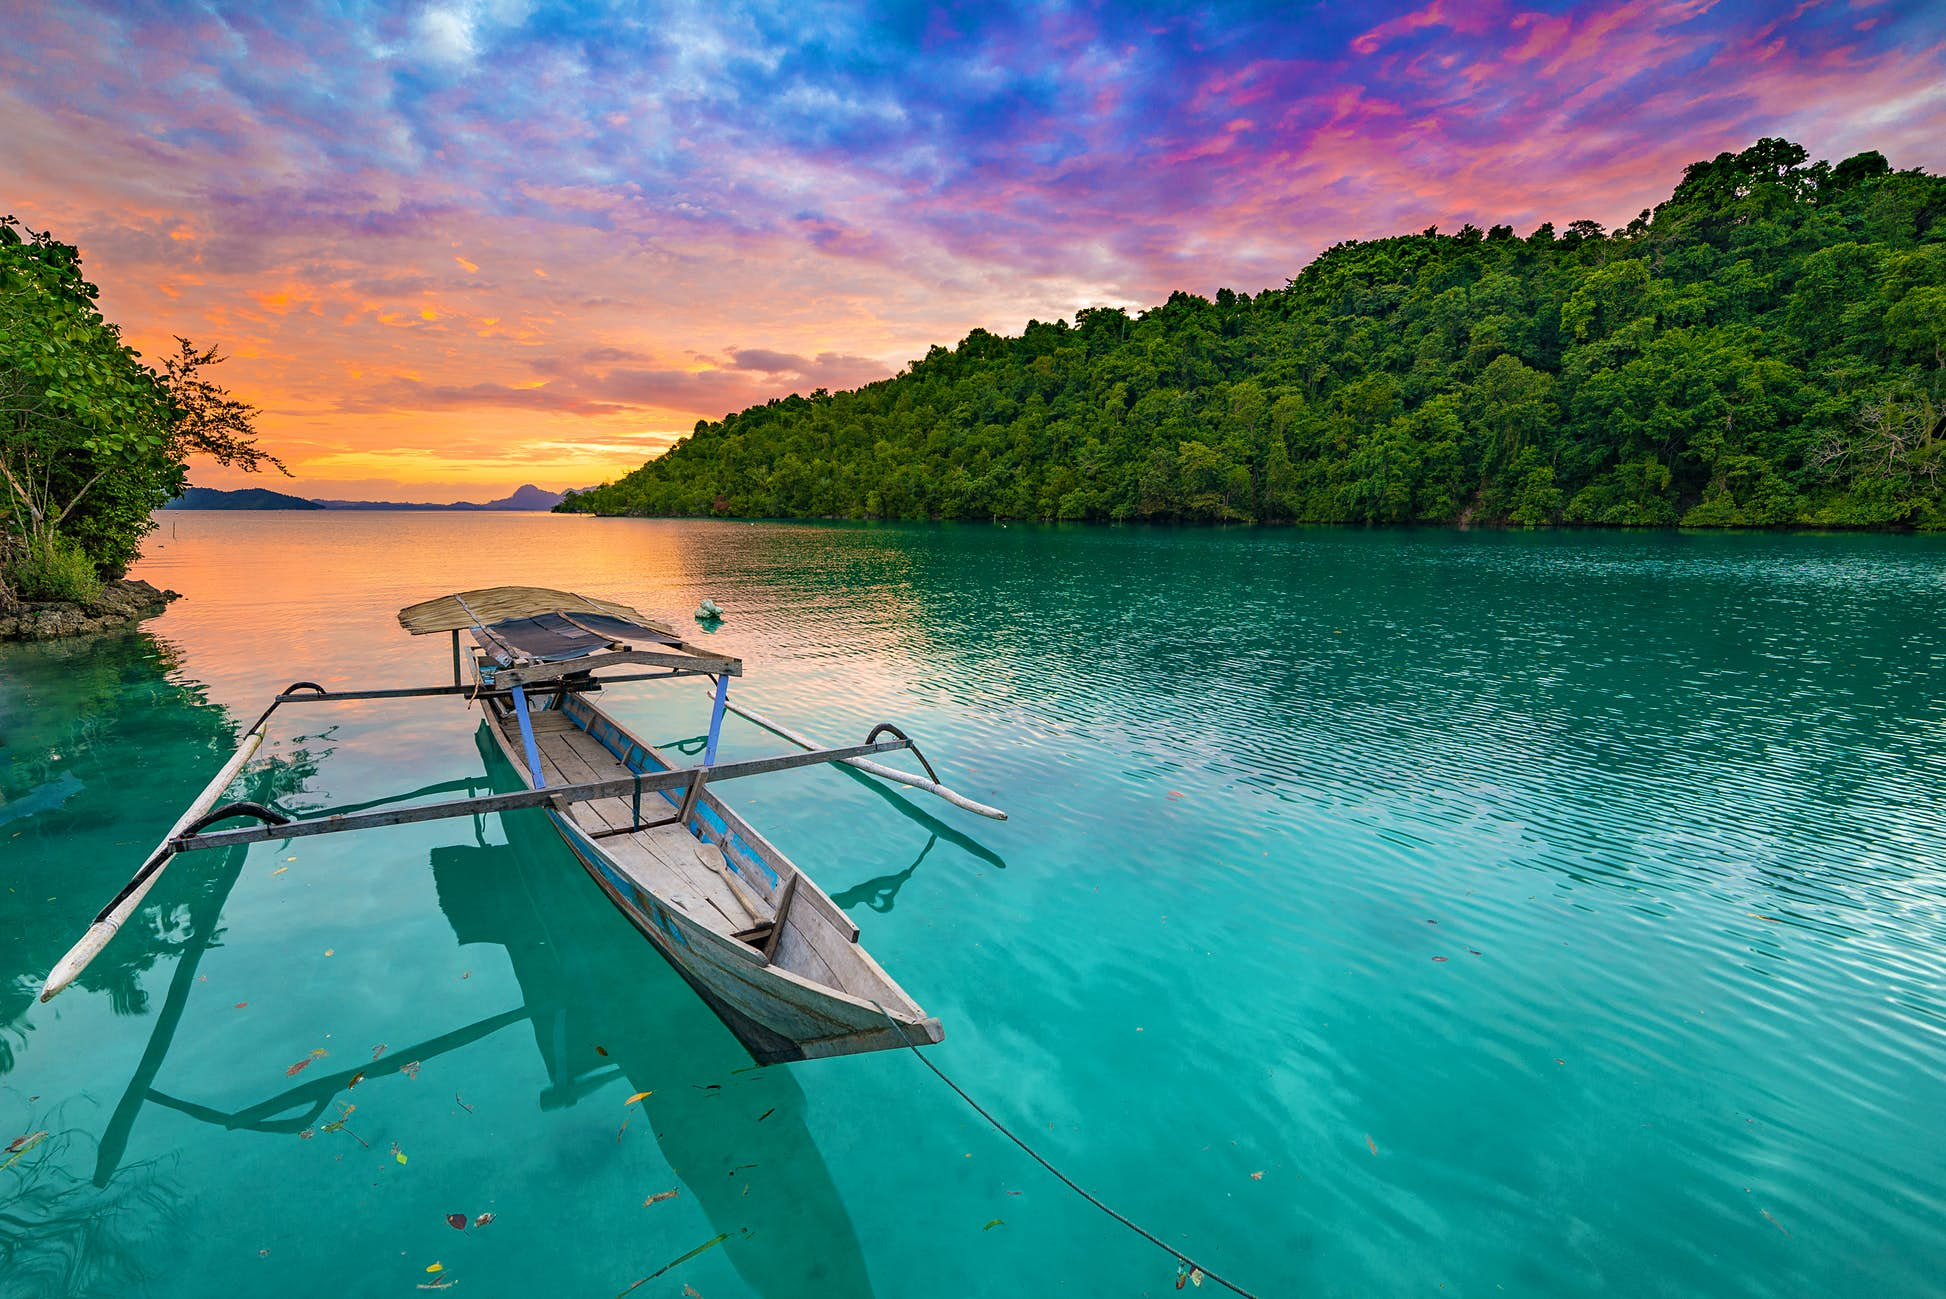 A small boat on still water during sunset at the Togian Islands. ©Fabio Lamanna/Shutterstock